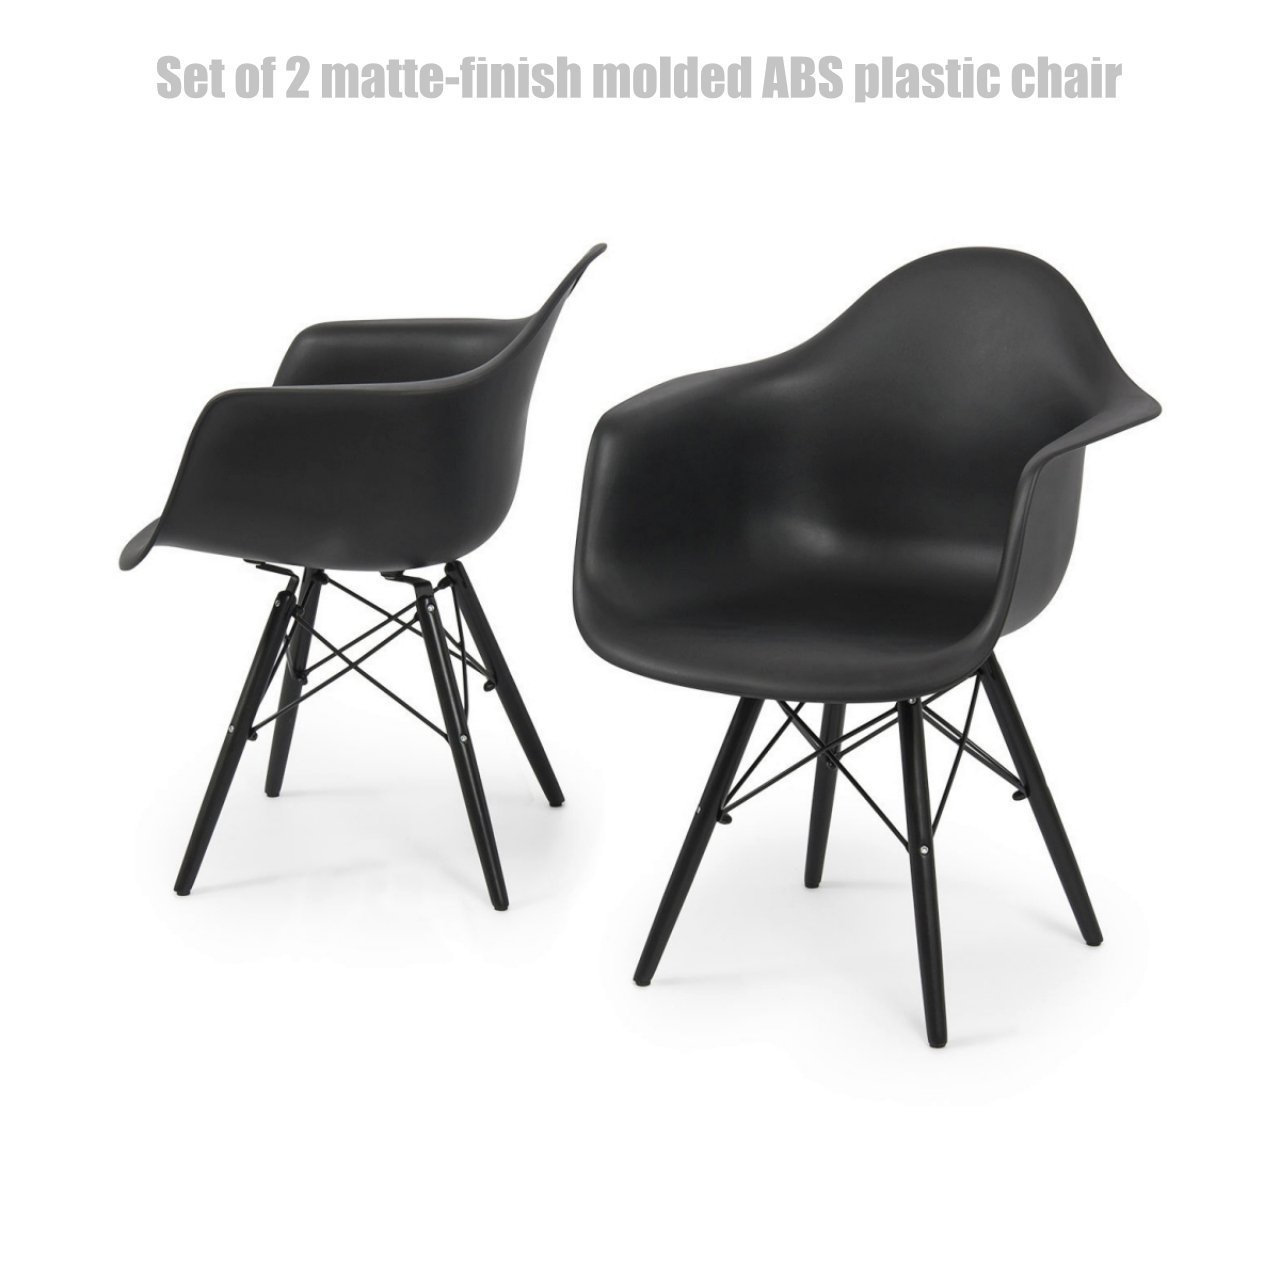 Modern Dining Chair Molded ABS Plastic Dowel Black Wooden Legs Posture Support Backrest Design Innovative Side Chair - Set of 2 Black #1442 by Koonlert@Shop (Image #7)